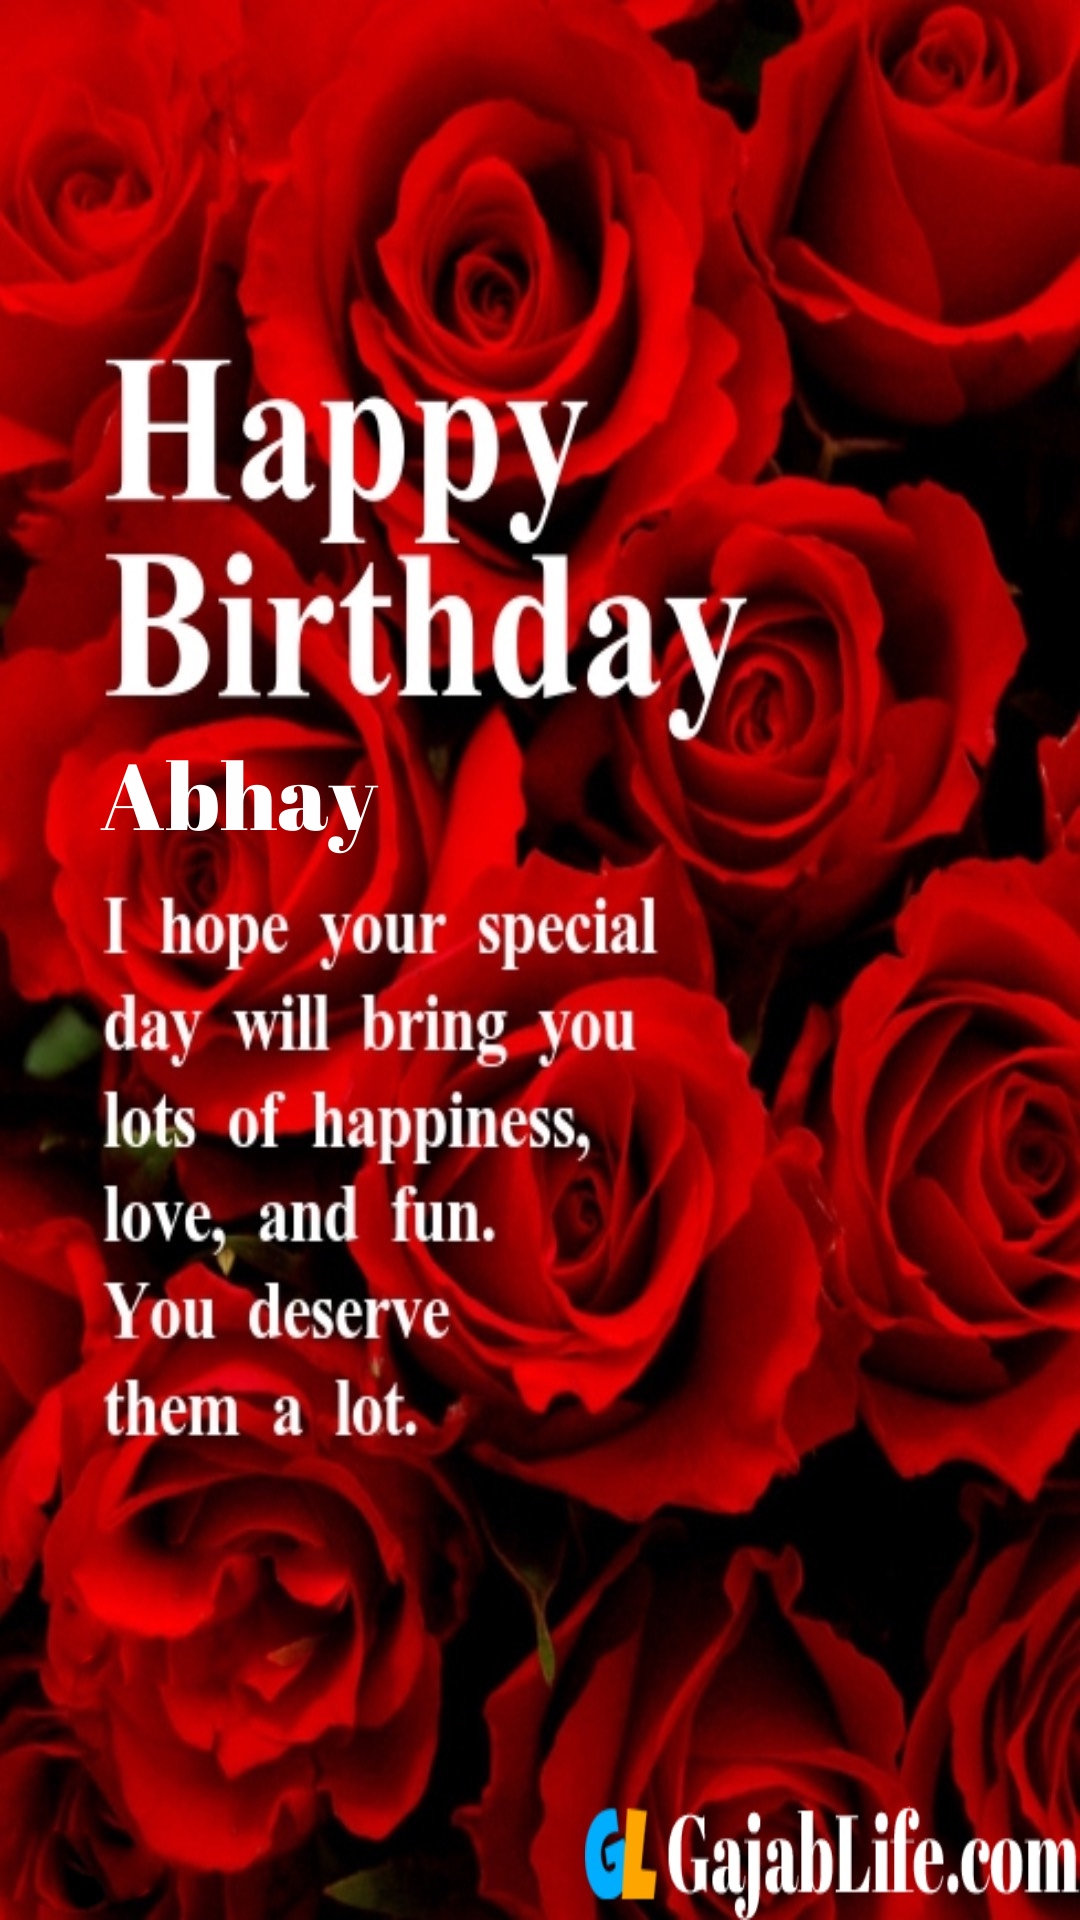 Abhay birthday greeting card with rose & love